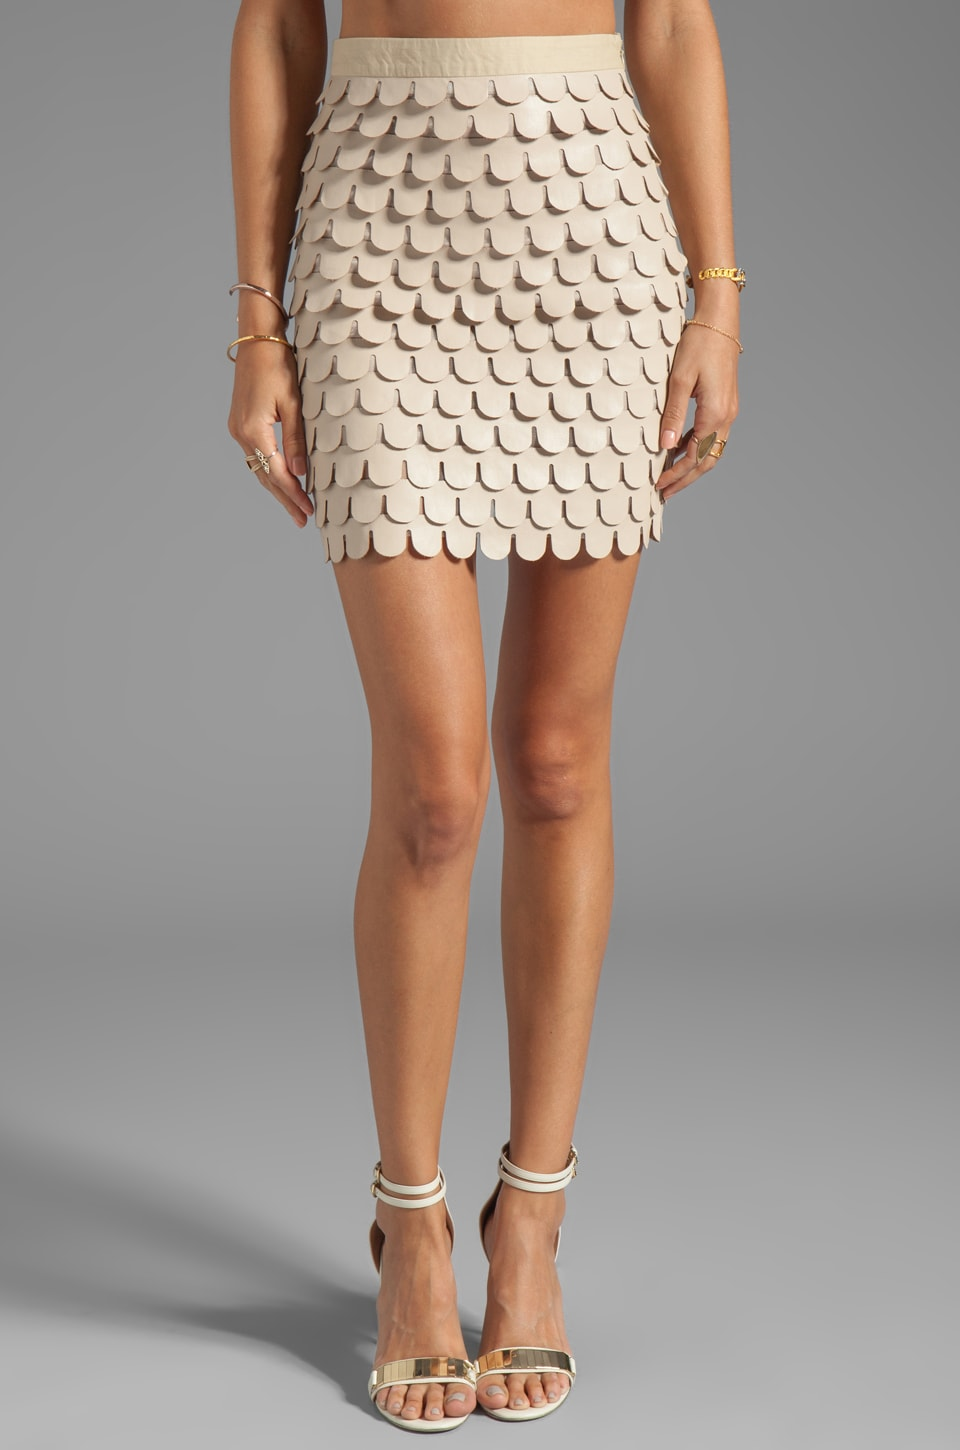 BLAQUE LABEL Faux Leather Skirt in Tan